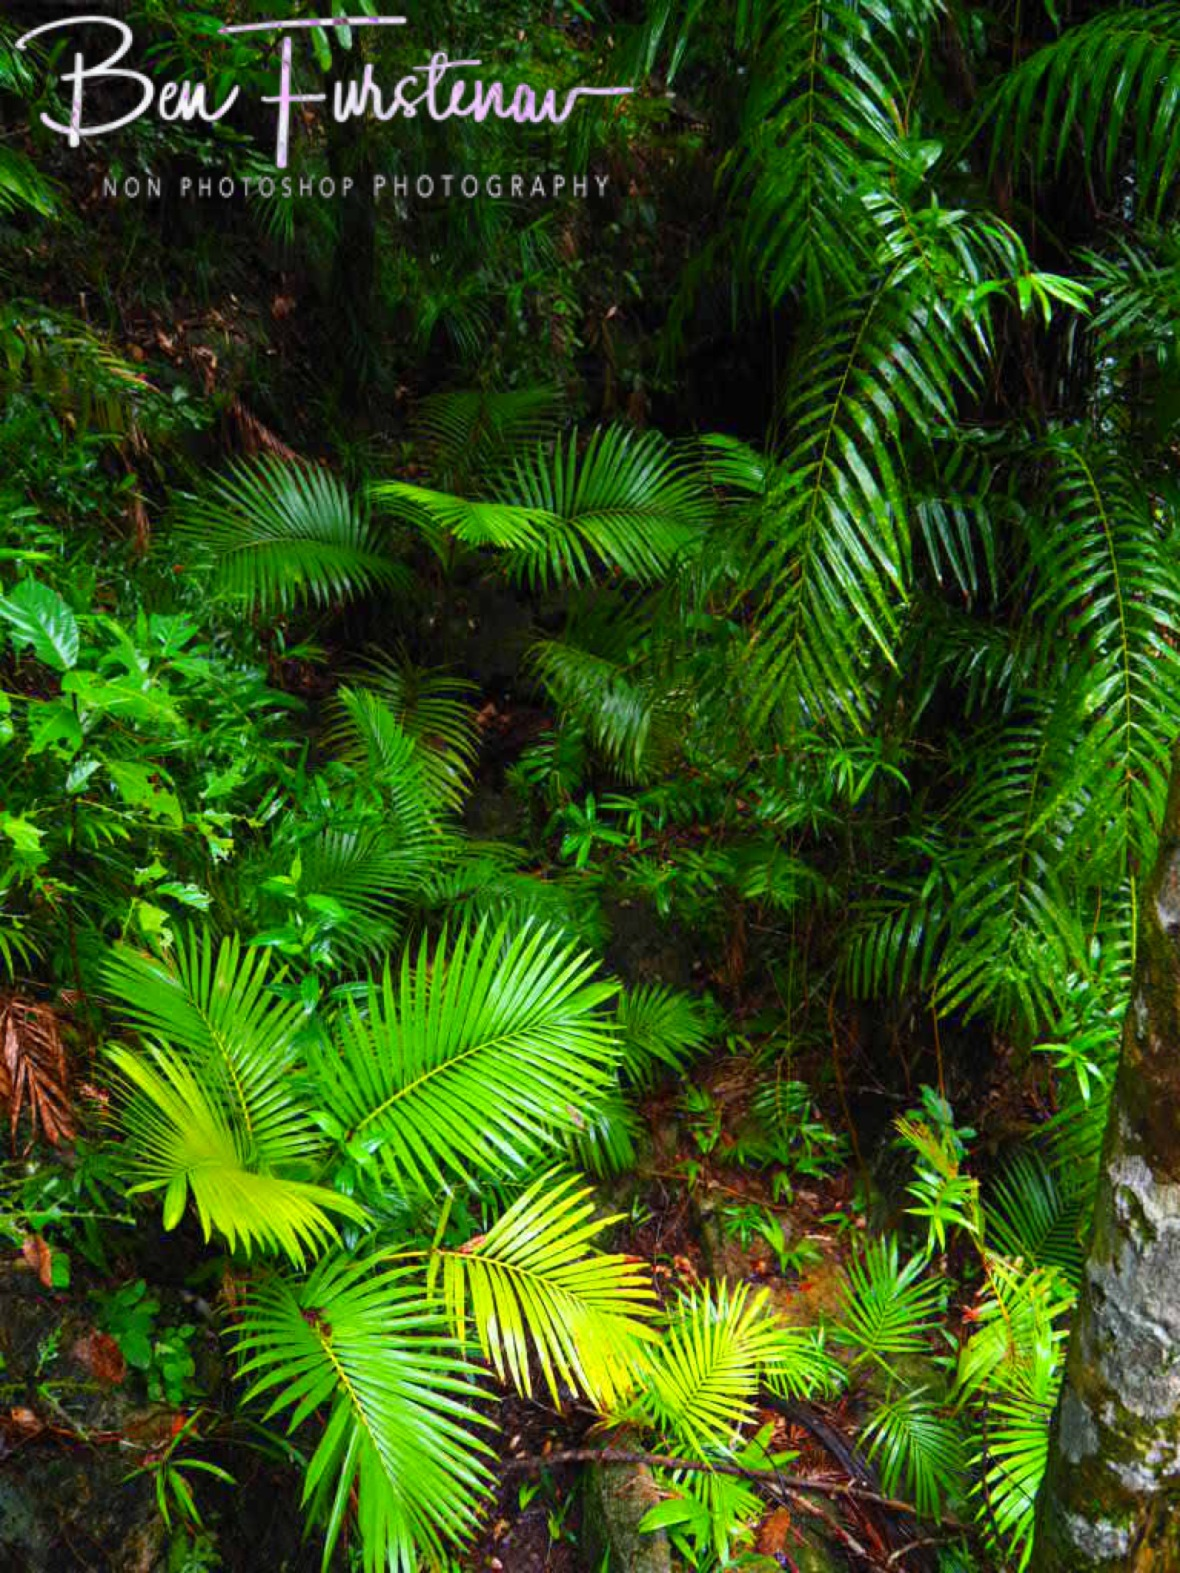 50 shades of green fern at Finch Hatton Gorge, Eungalla National Park, Queensland, Australia